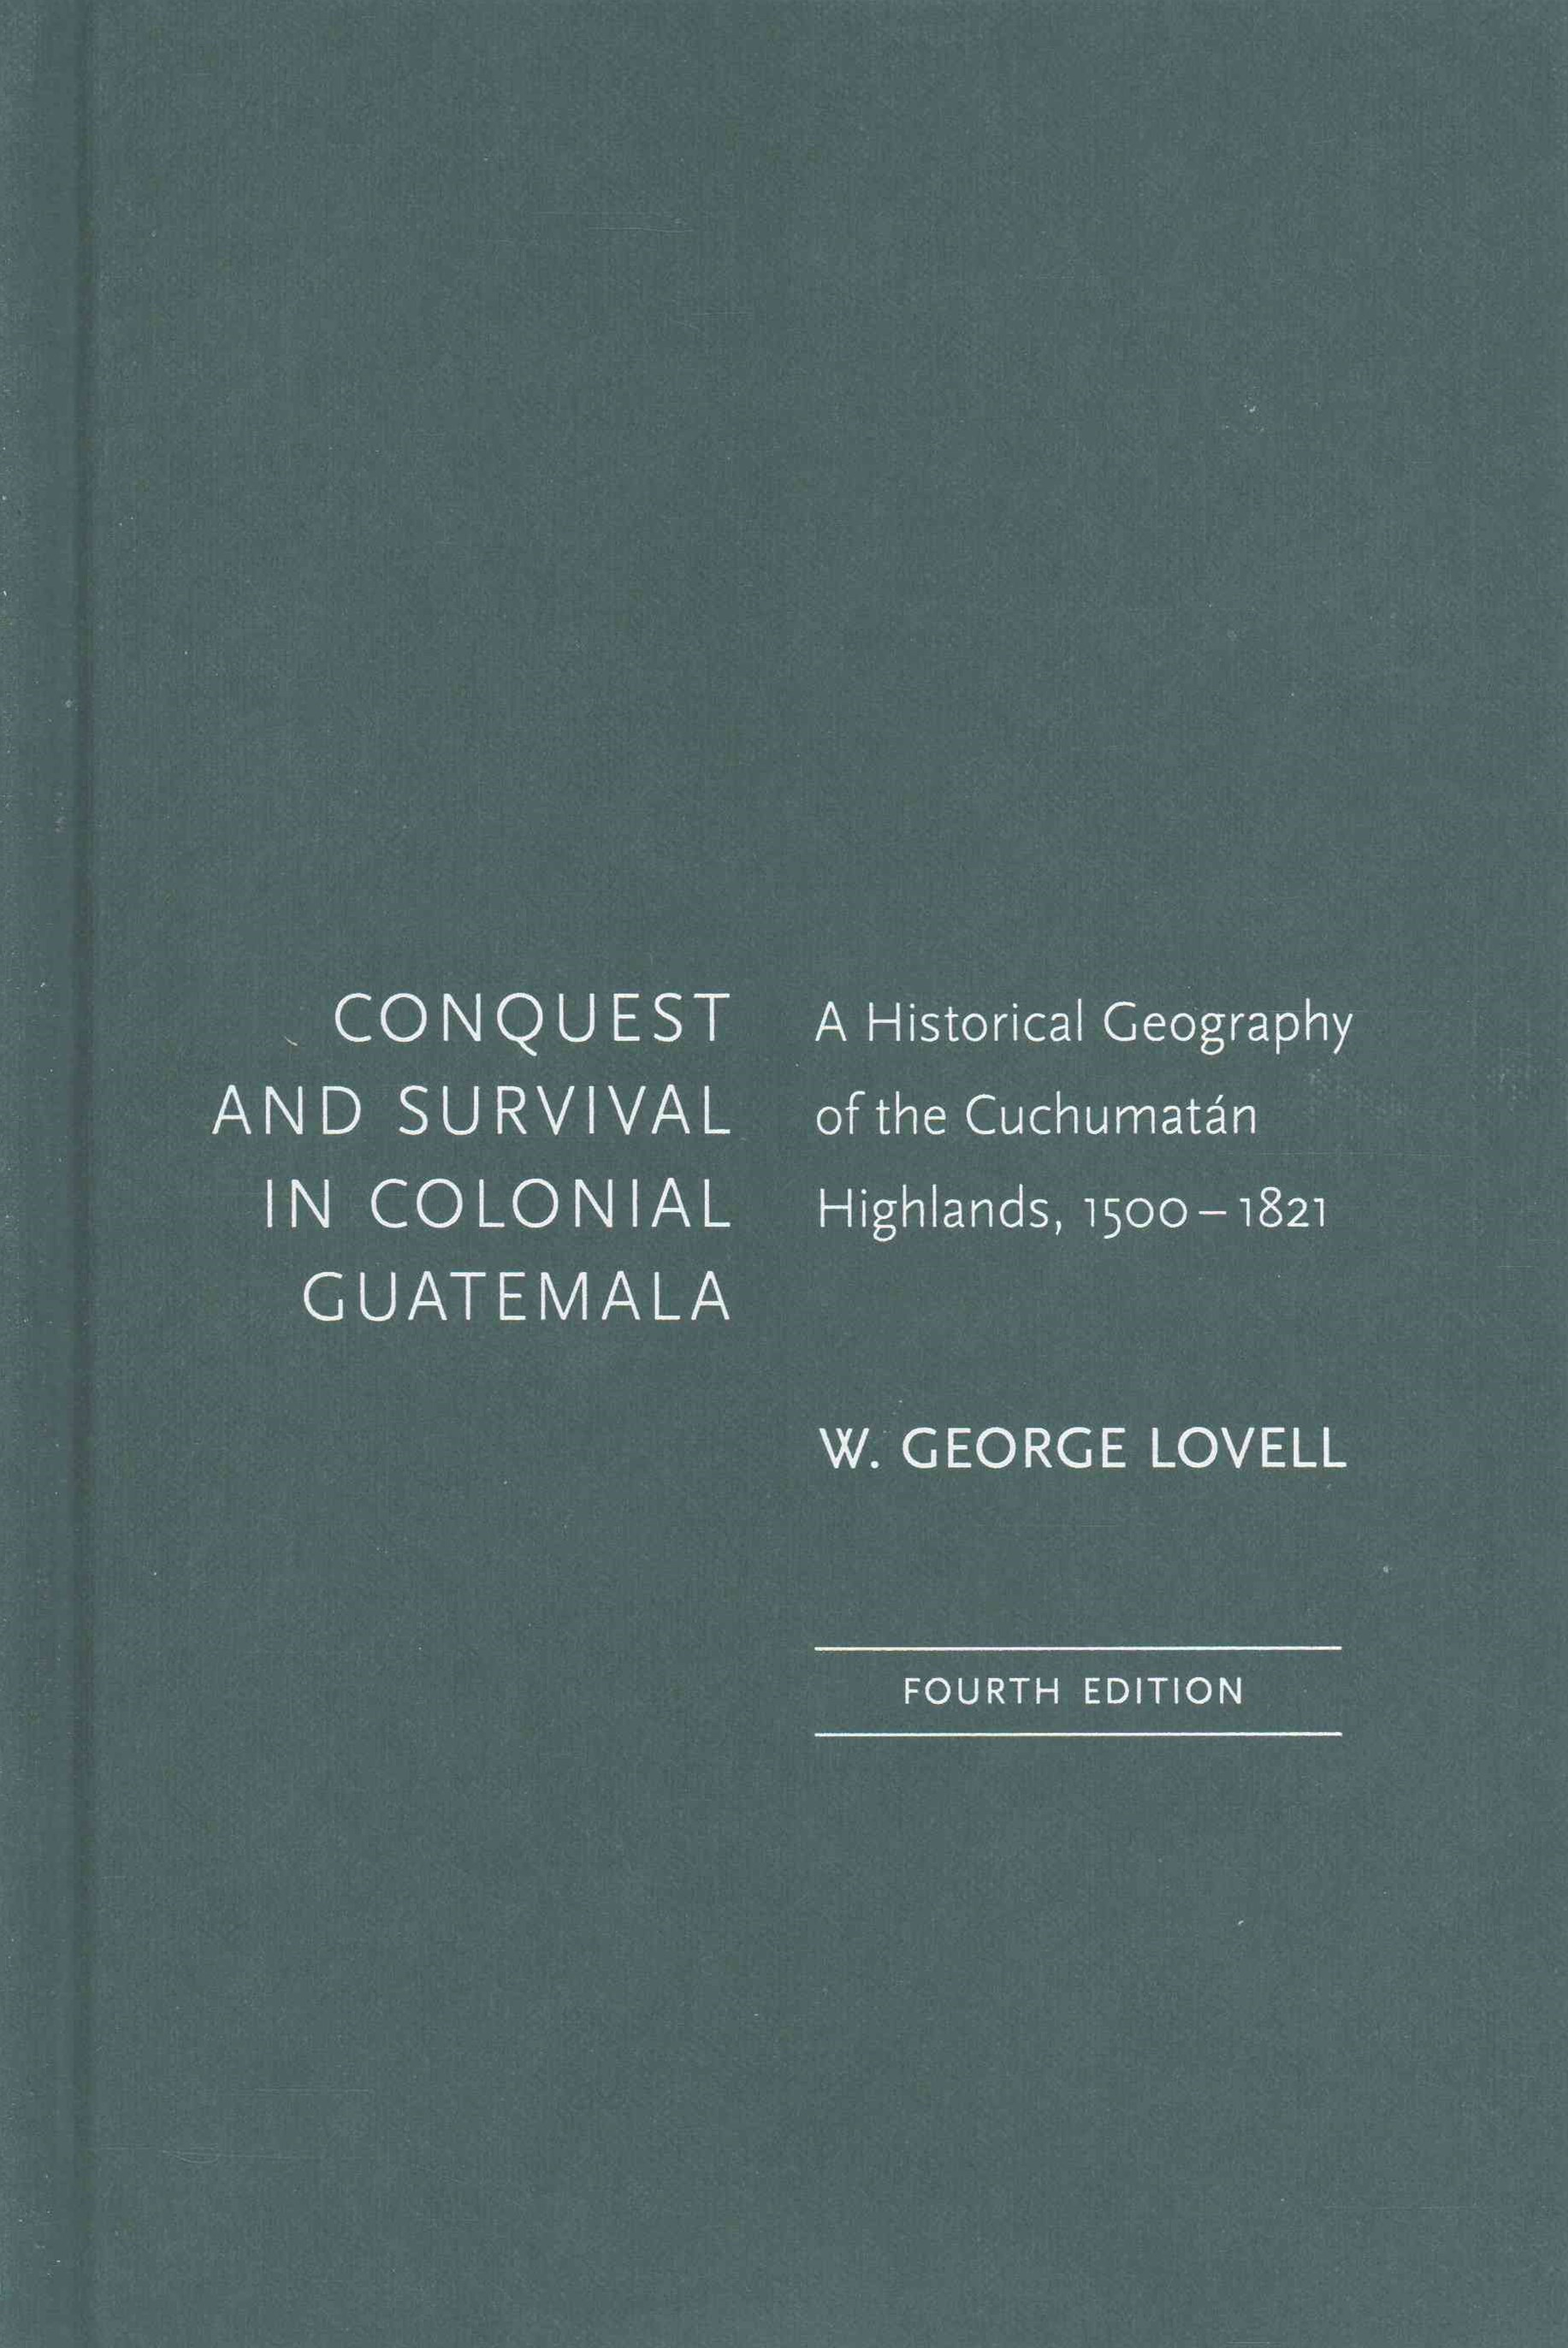 Conquest and Survival in Colonial Guatemala, Fourth Edition